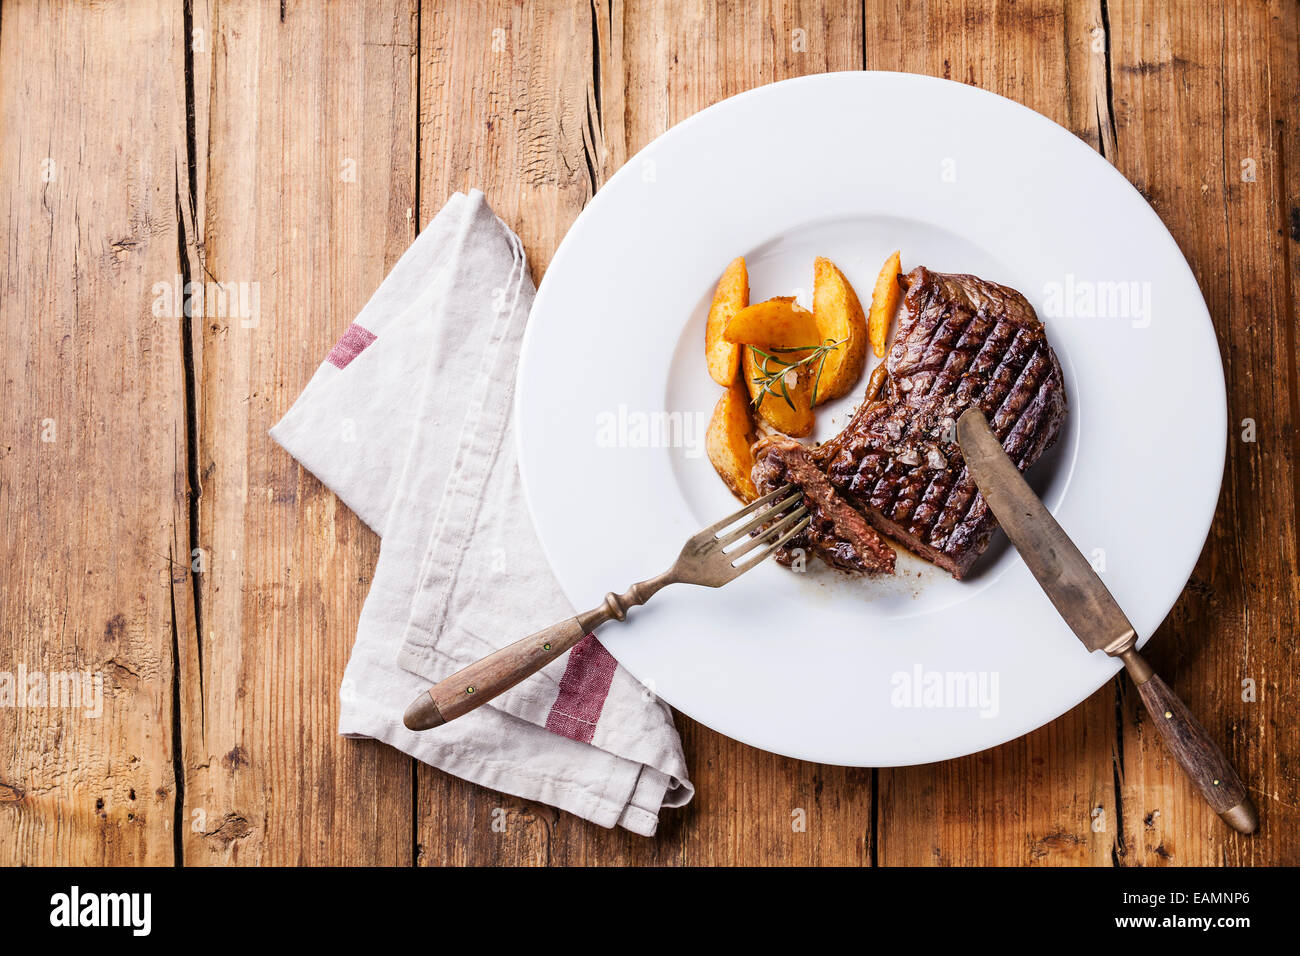 Grilled South American premium beef New York steak with roasted potato wedges on white plate on wooden background - Stock Image